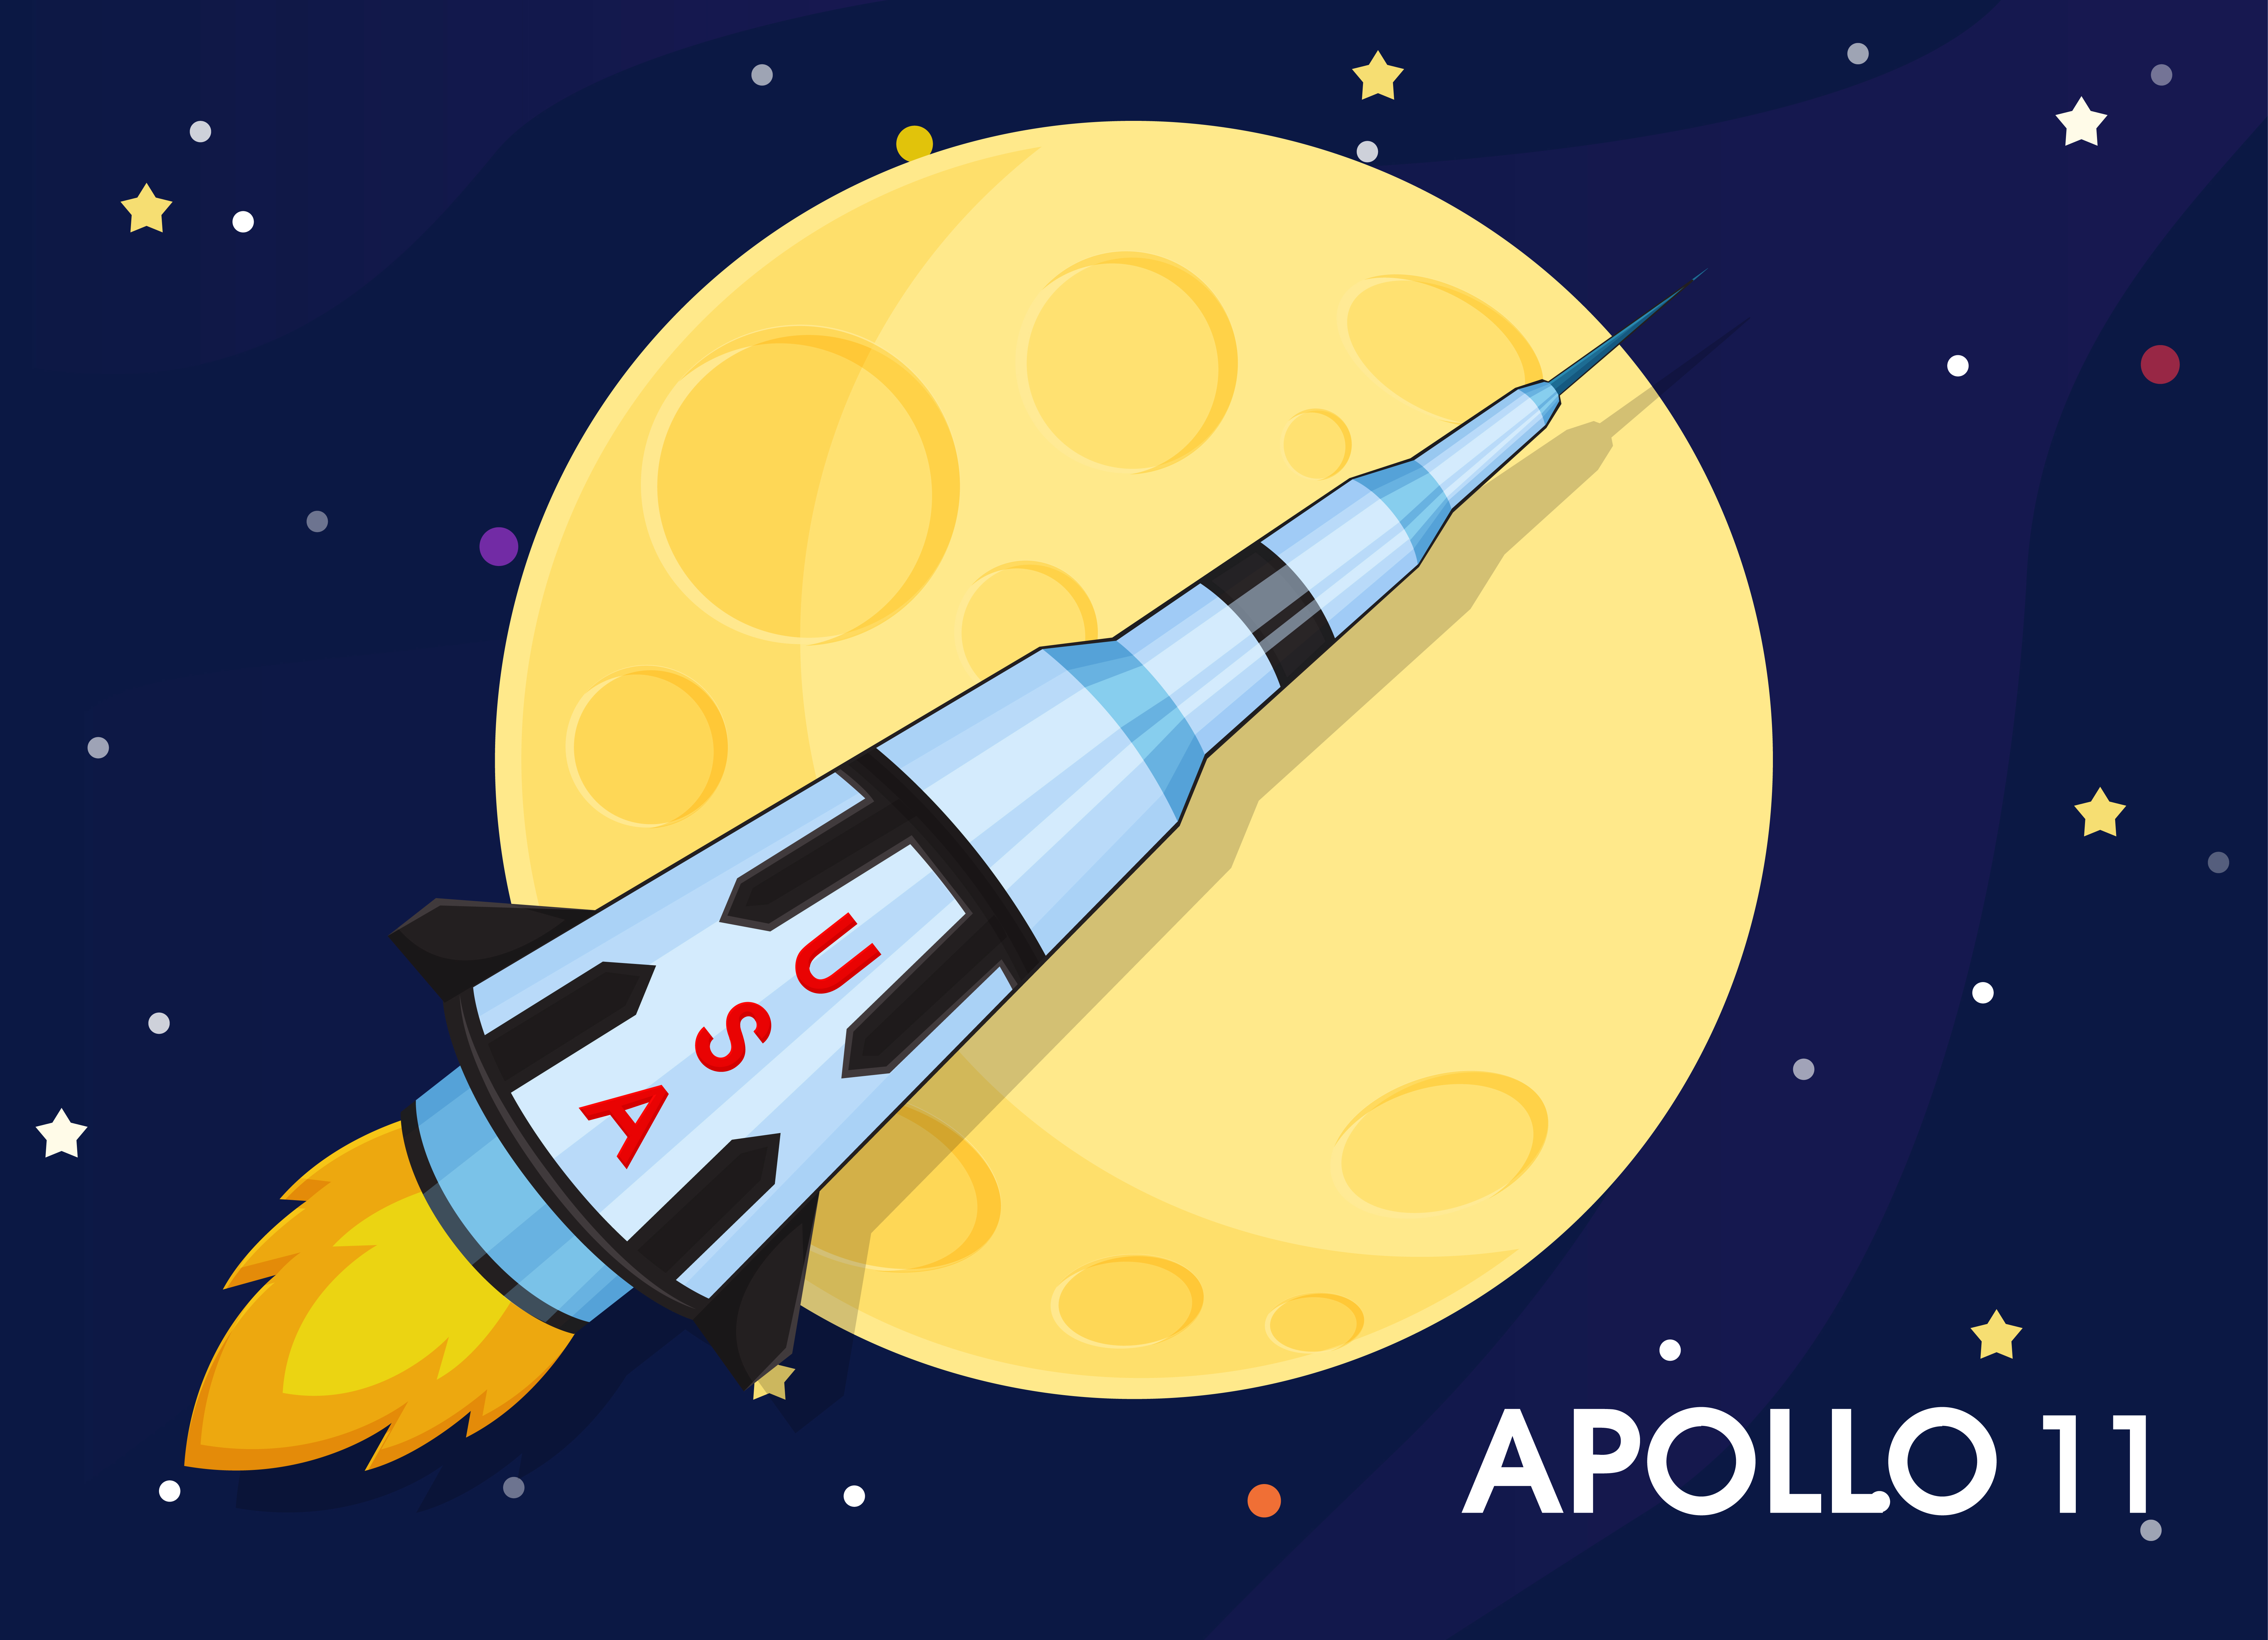 apollo spacecraft clipart - HD 7375×5332